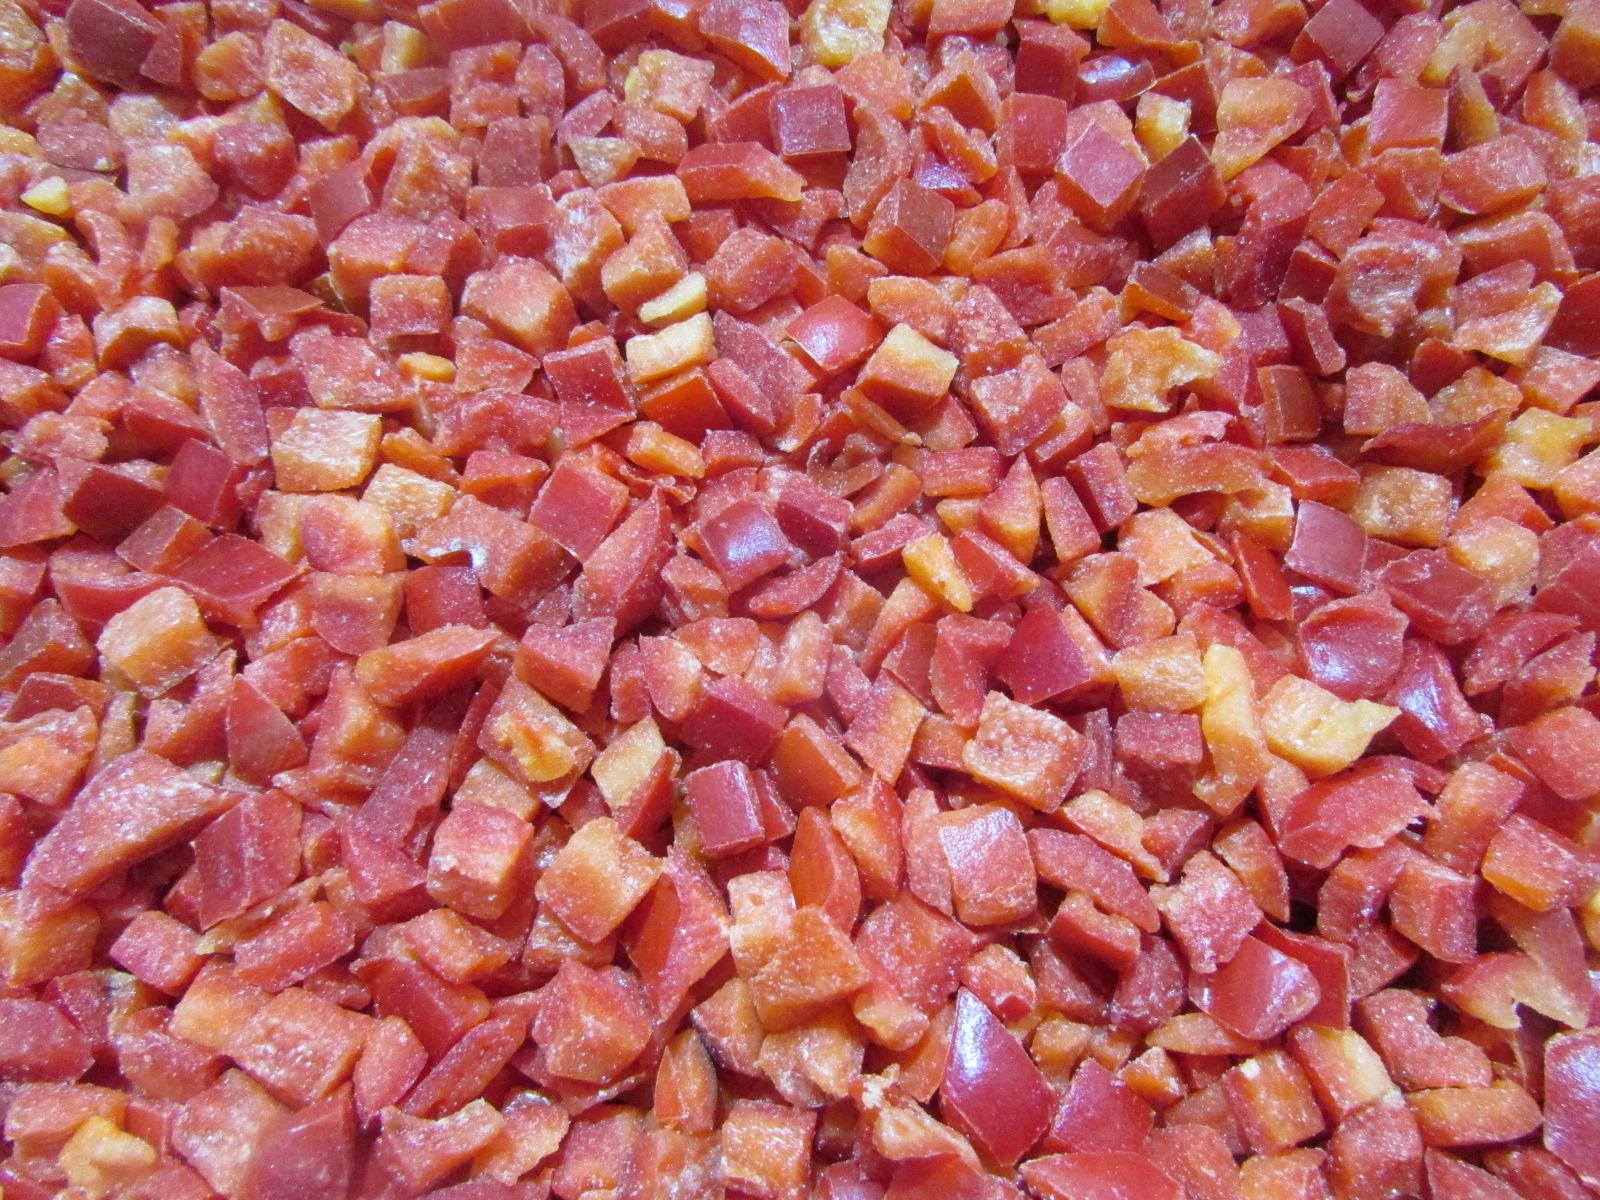 IQF Red Peppers Dices,Frozen Red Pepper Dices,IQF Red Pepper Cubes 5